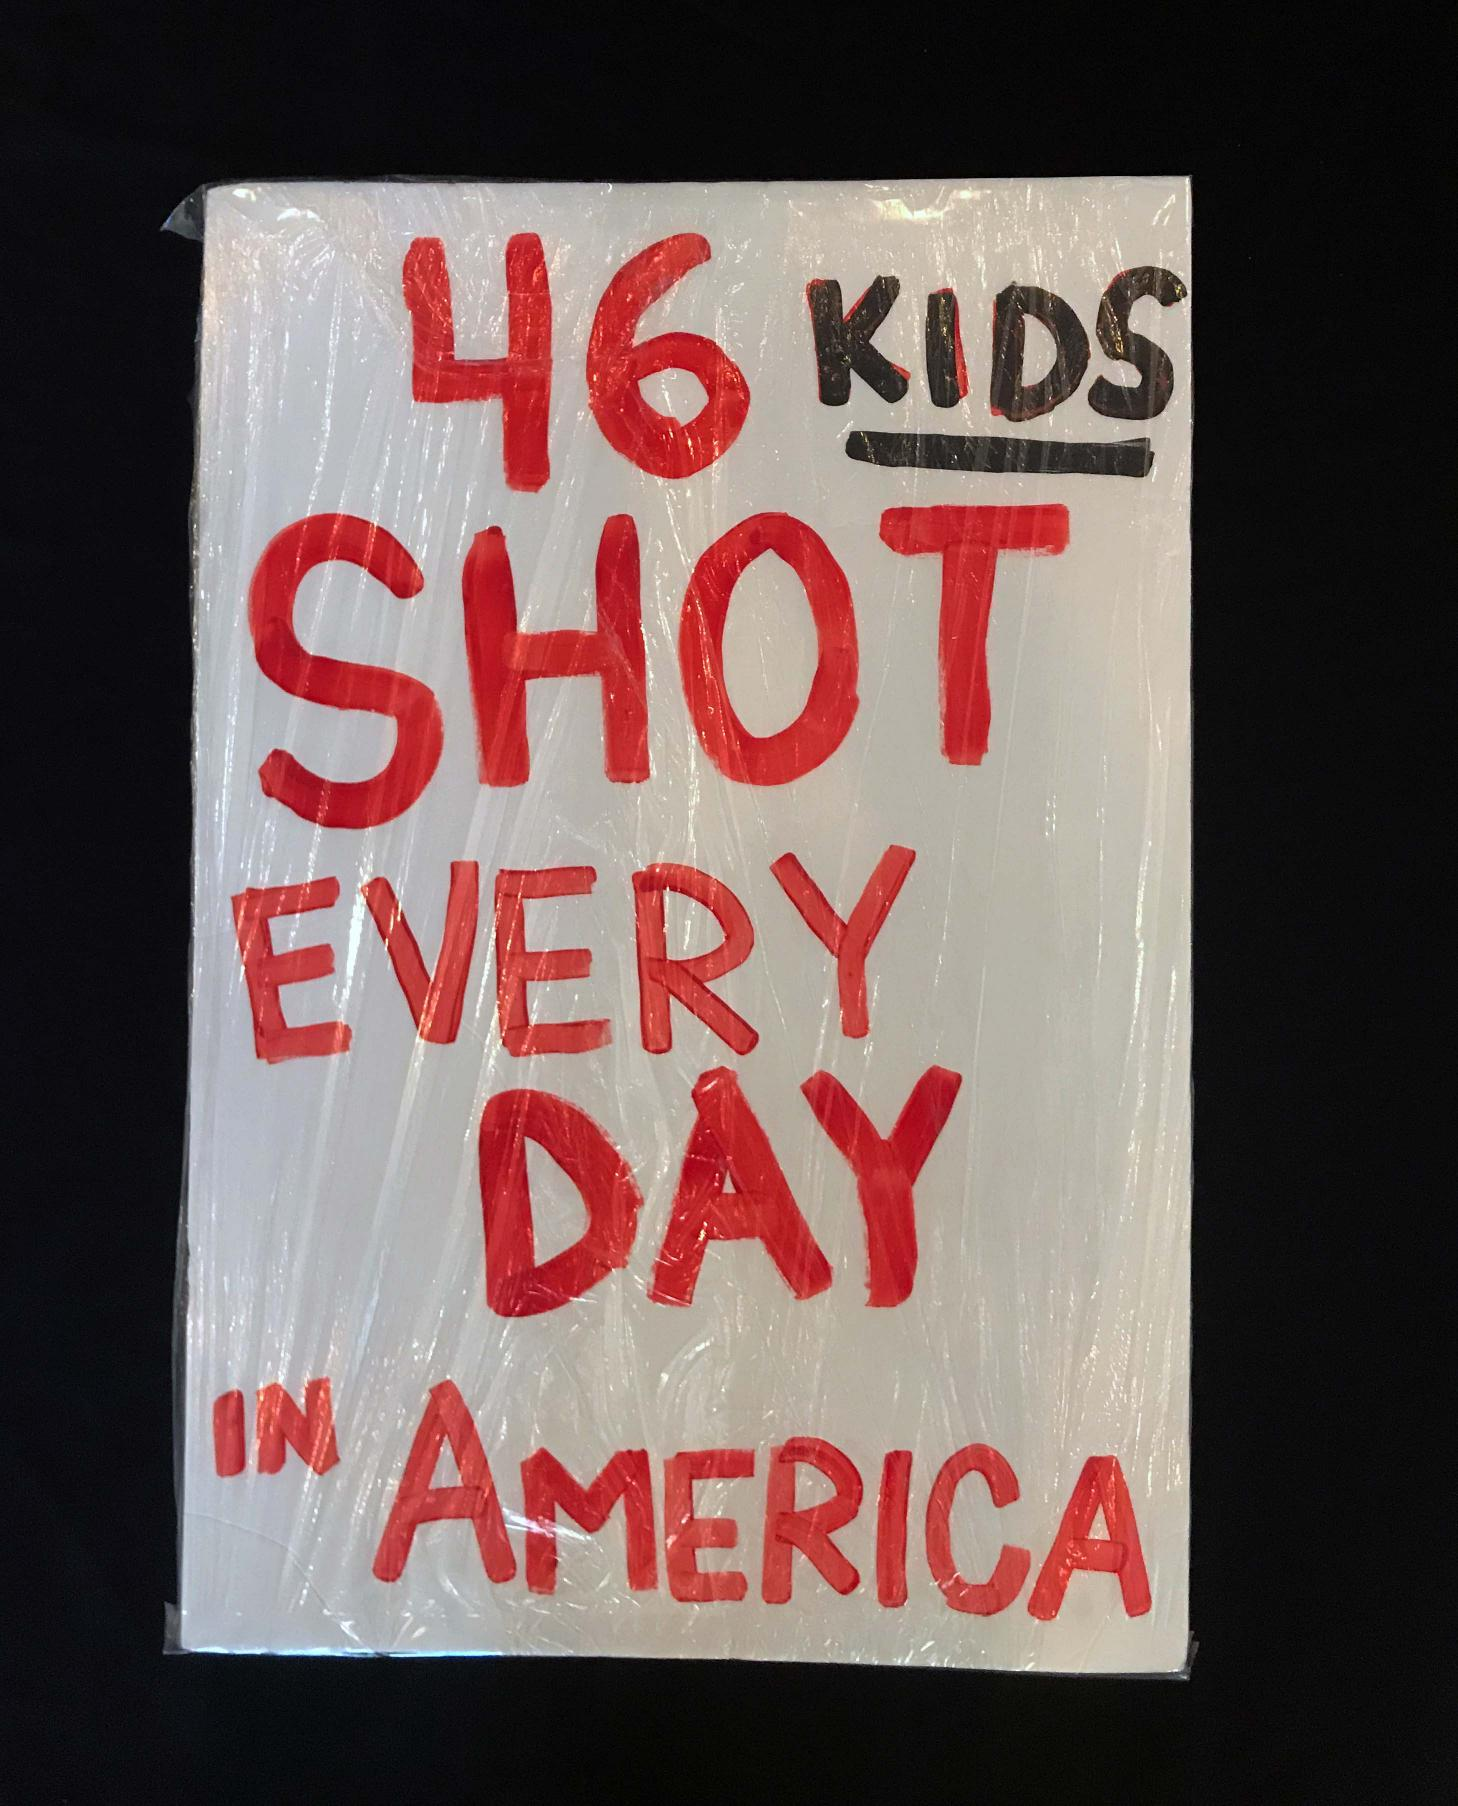 "Charlotte March for Our Lives, 2018. Sign reads: ""46 kids shot every day in America"""